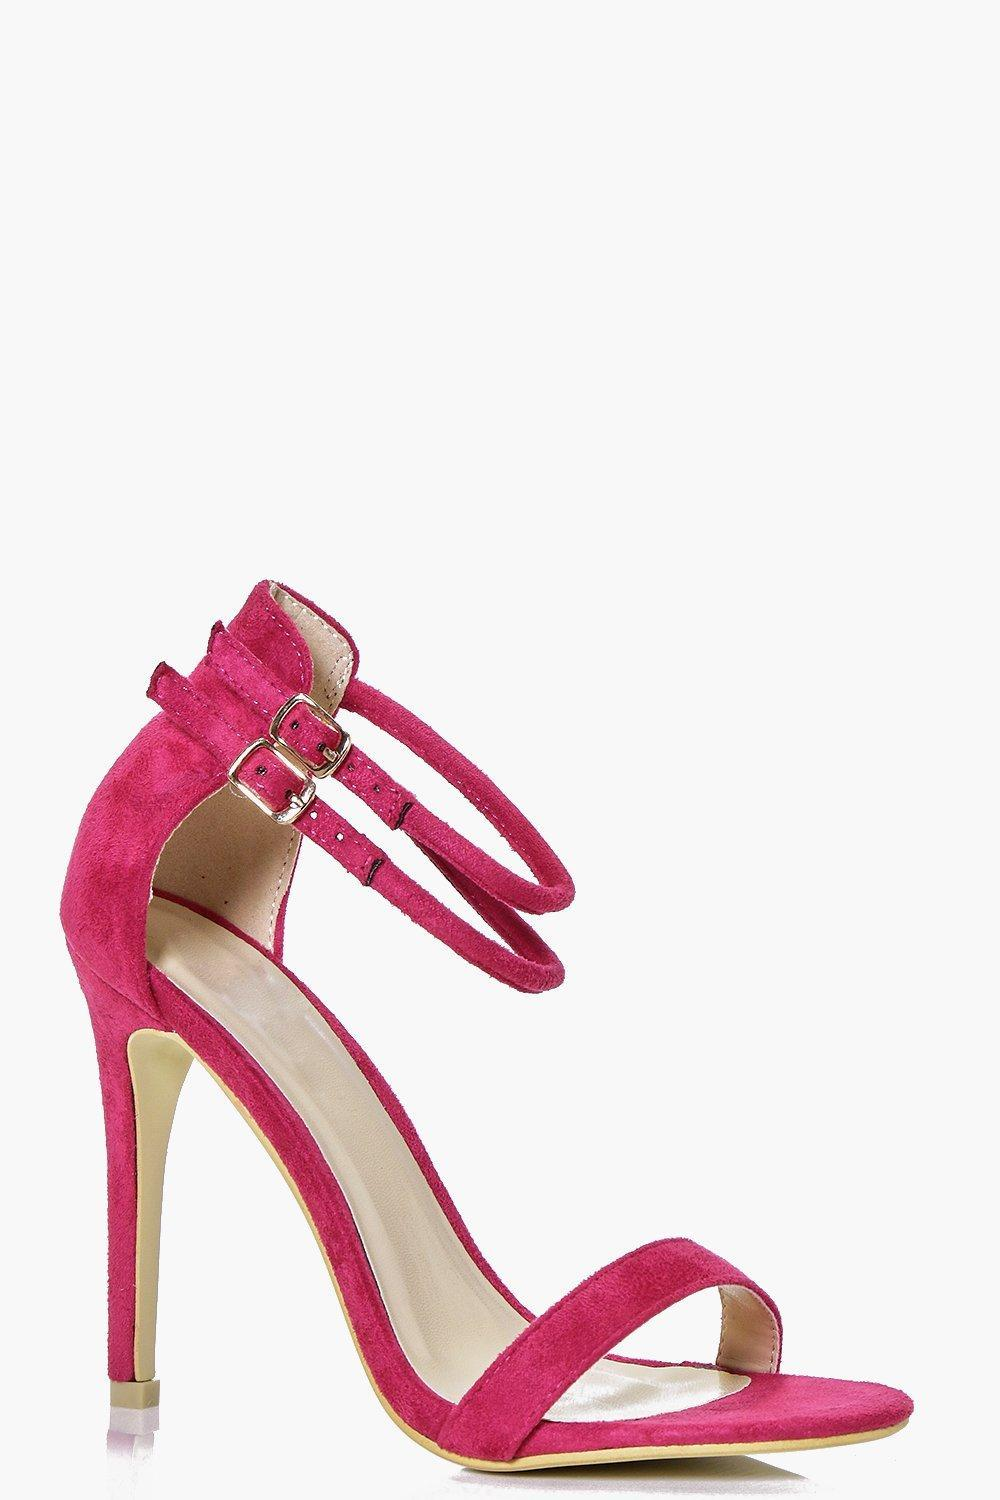 Double Ankle Band Two Part Heel Fuchsia - predominant colour: hot pink; occasions: evening, occasion; material: suede; embellishment: buckles; ankle detail: ankle strap; heel: stiletto; toe: open toe/peeptoe; style: strappy; finish: plain; pattern: plain; heel height: very high; season: s/s 2016; wardrobe: event